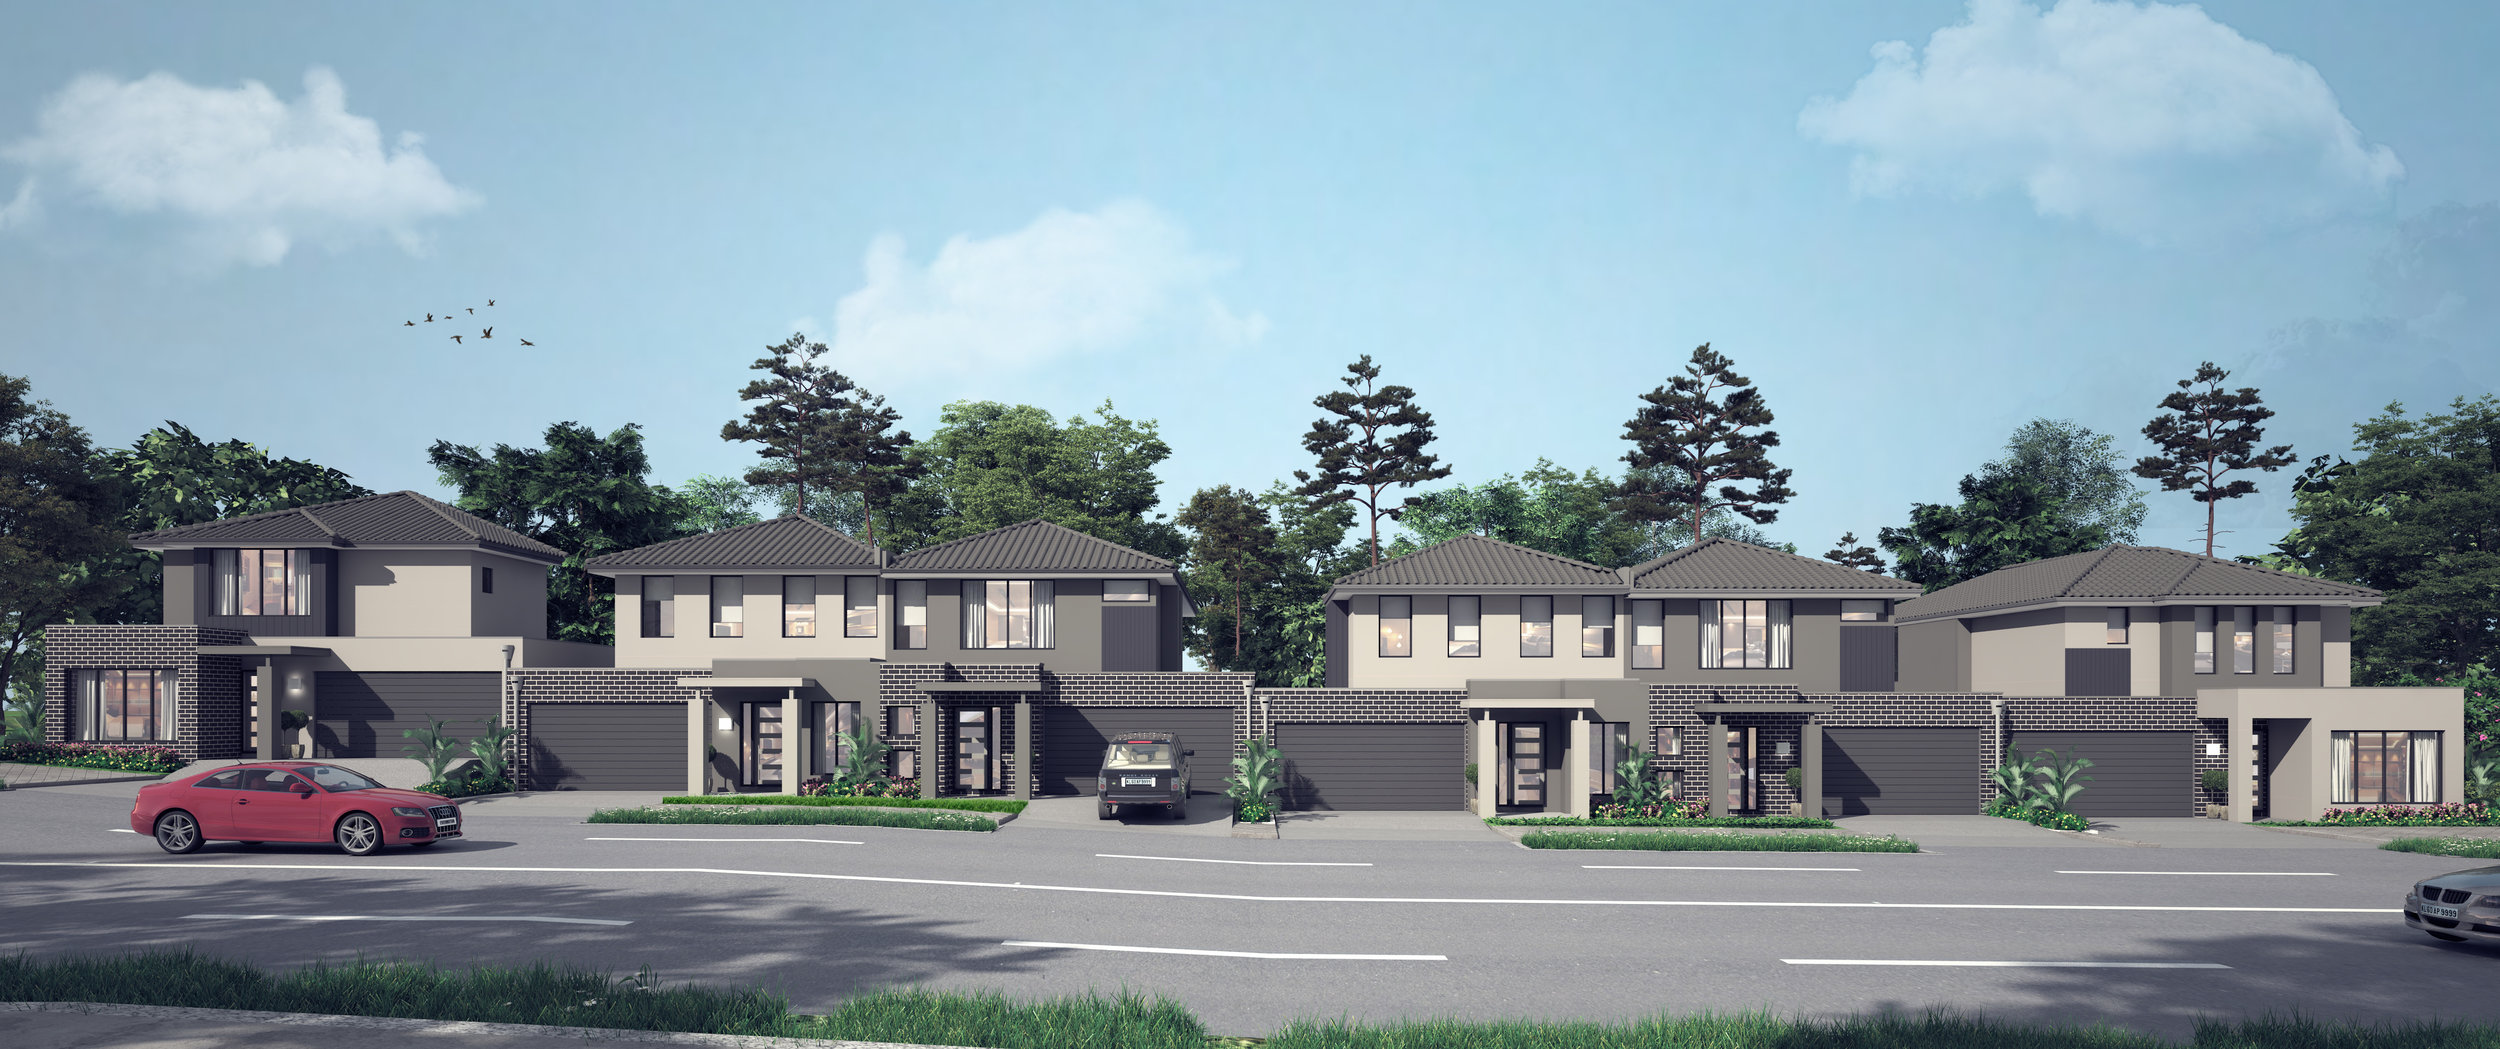 TOWNHOUSE OFFER - 14/09/18Aspen on Clyde, as you may or may not know has some great looking townhouses planned throughout the estate. We currently have an offer with our townhouses lot 2 -5 for a limited time. Pay $10,000 deposit and don't pay anything until the completion of the build. Please click image on the left to view the full offer. T&C's apply